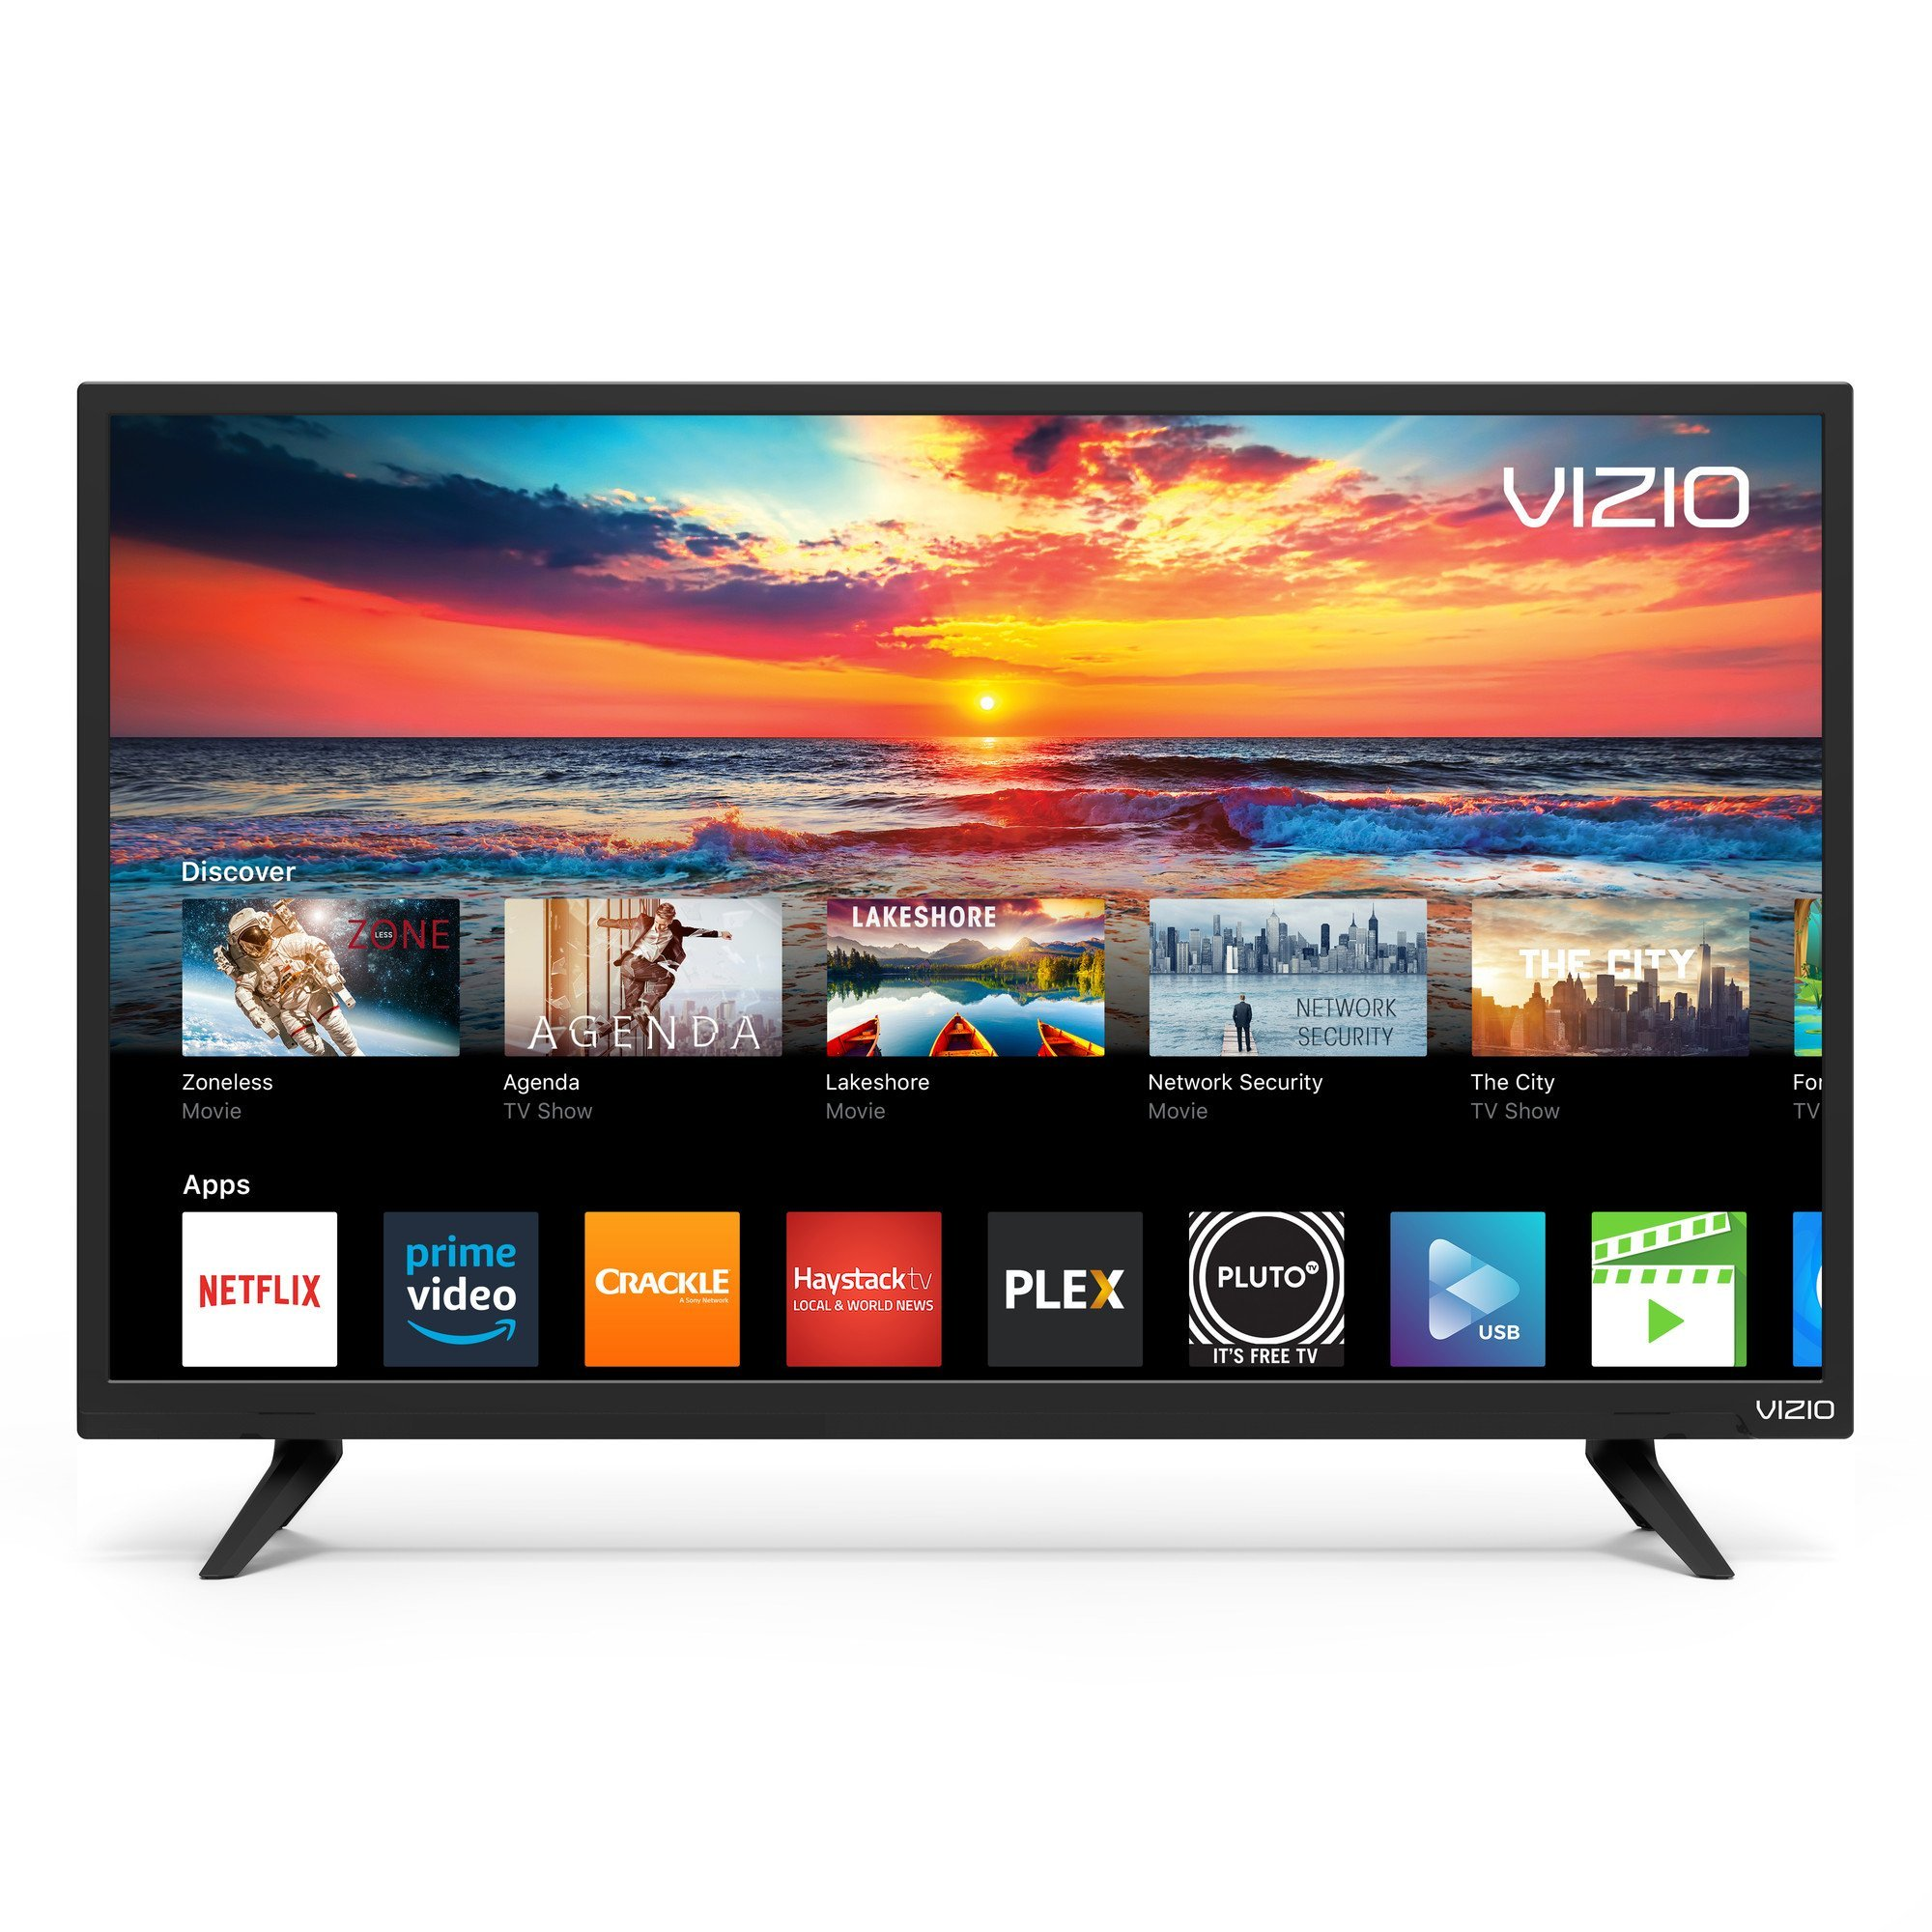 VIZIO SmartCast D-Series 32' Class FHD (1080P) Smart Full-Array LED TV D32f-F1 (Renewed) by VIZIO (Image #2)